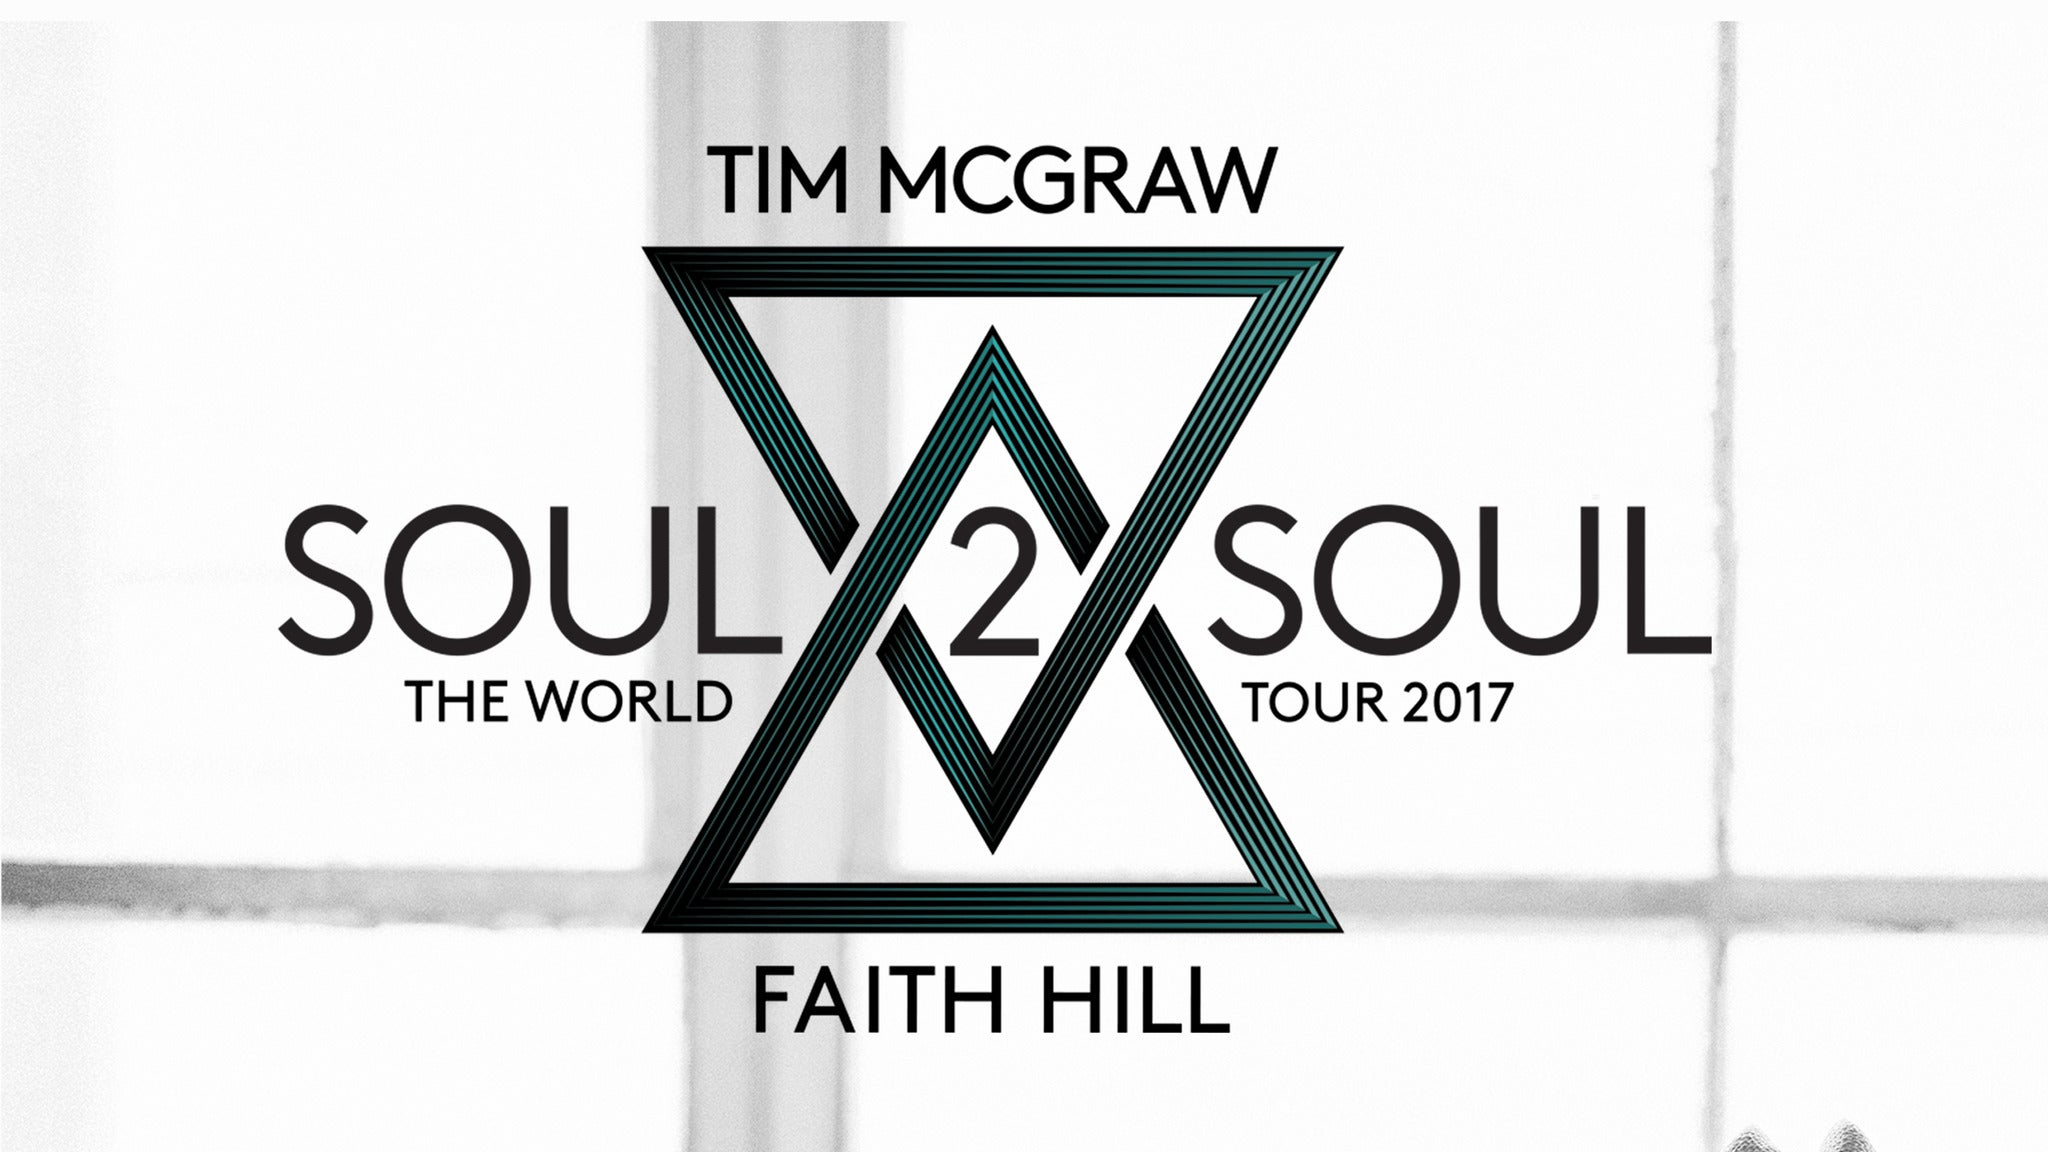 image for event Tim McGraw and Faith Hill